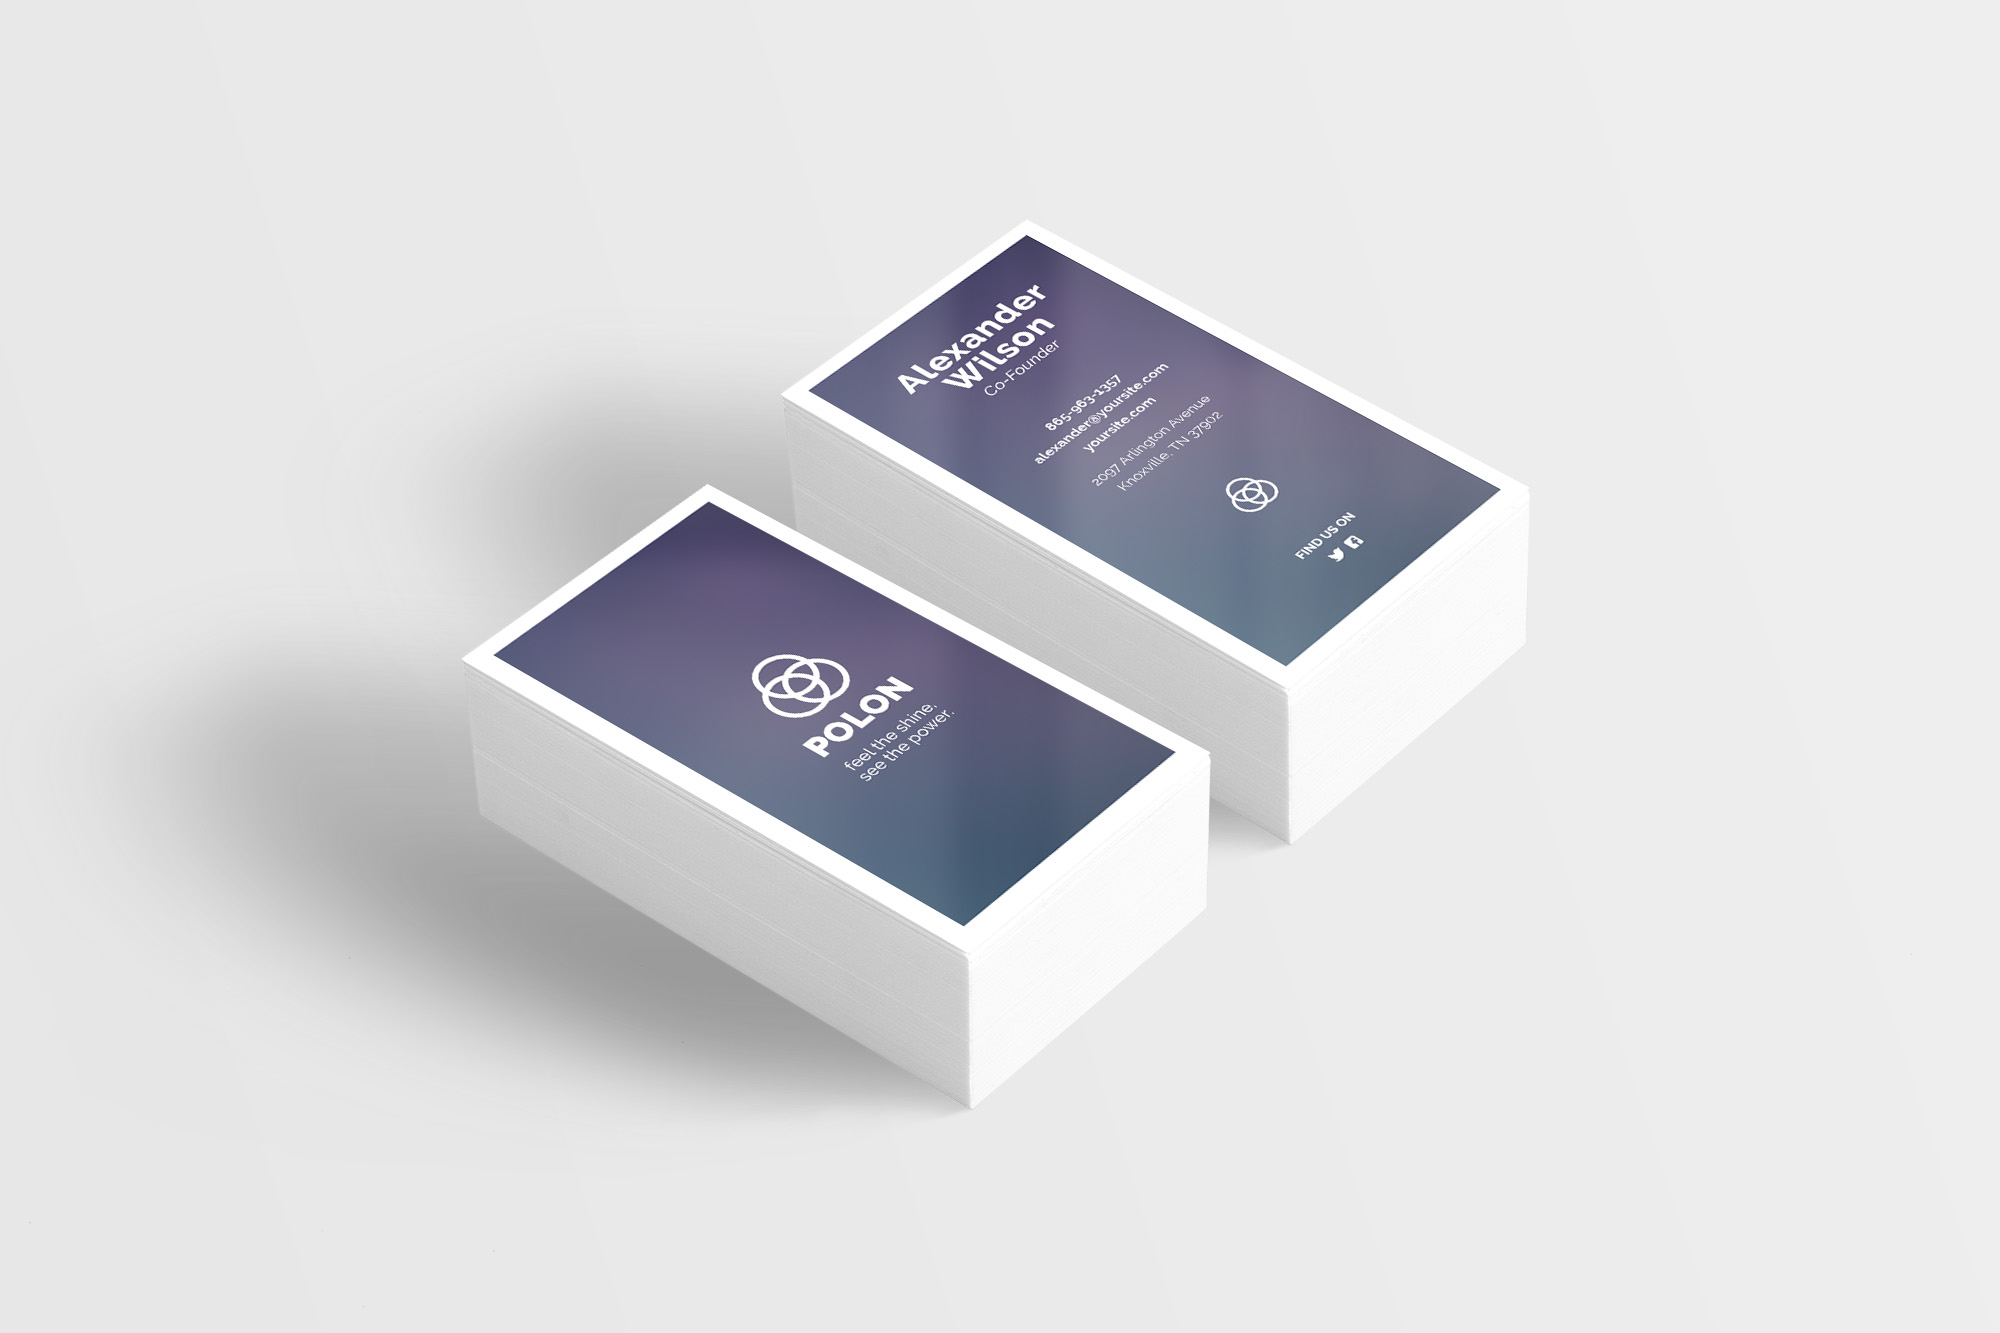 Polon - A Modern Business Card Template example image 6